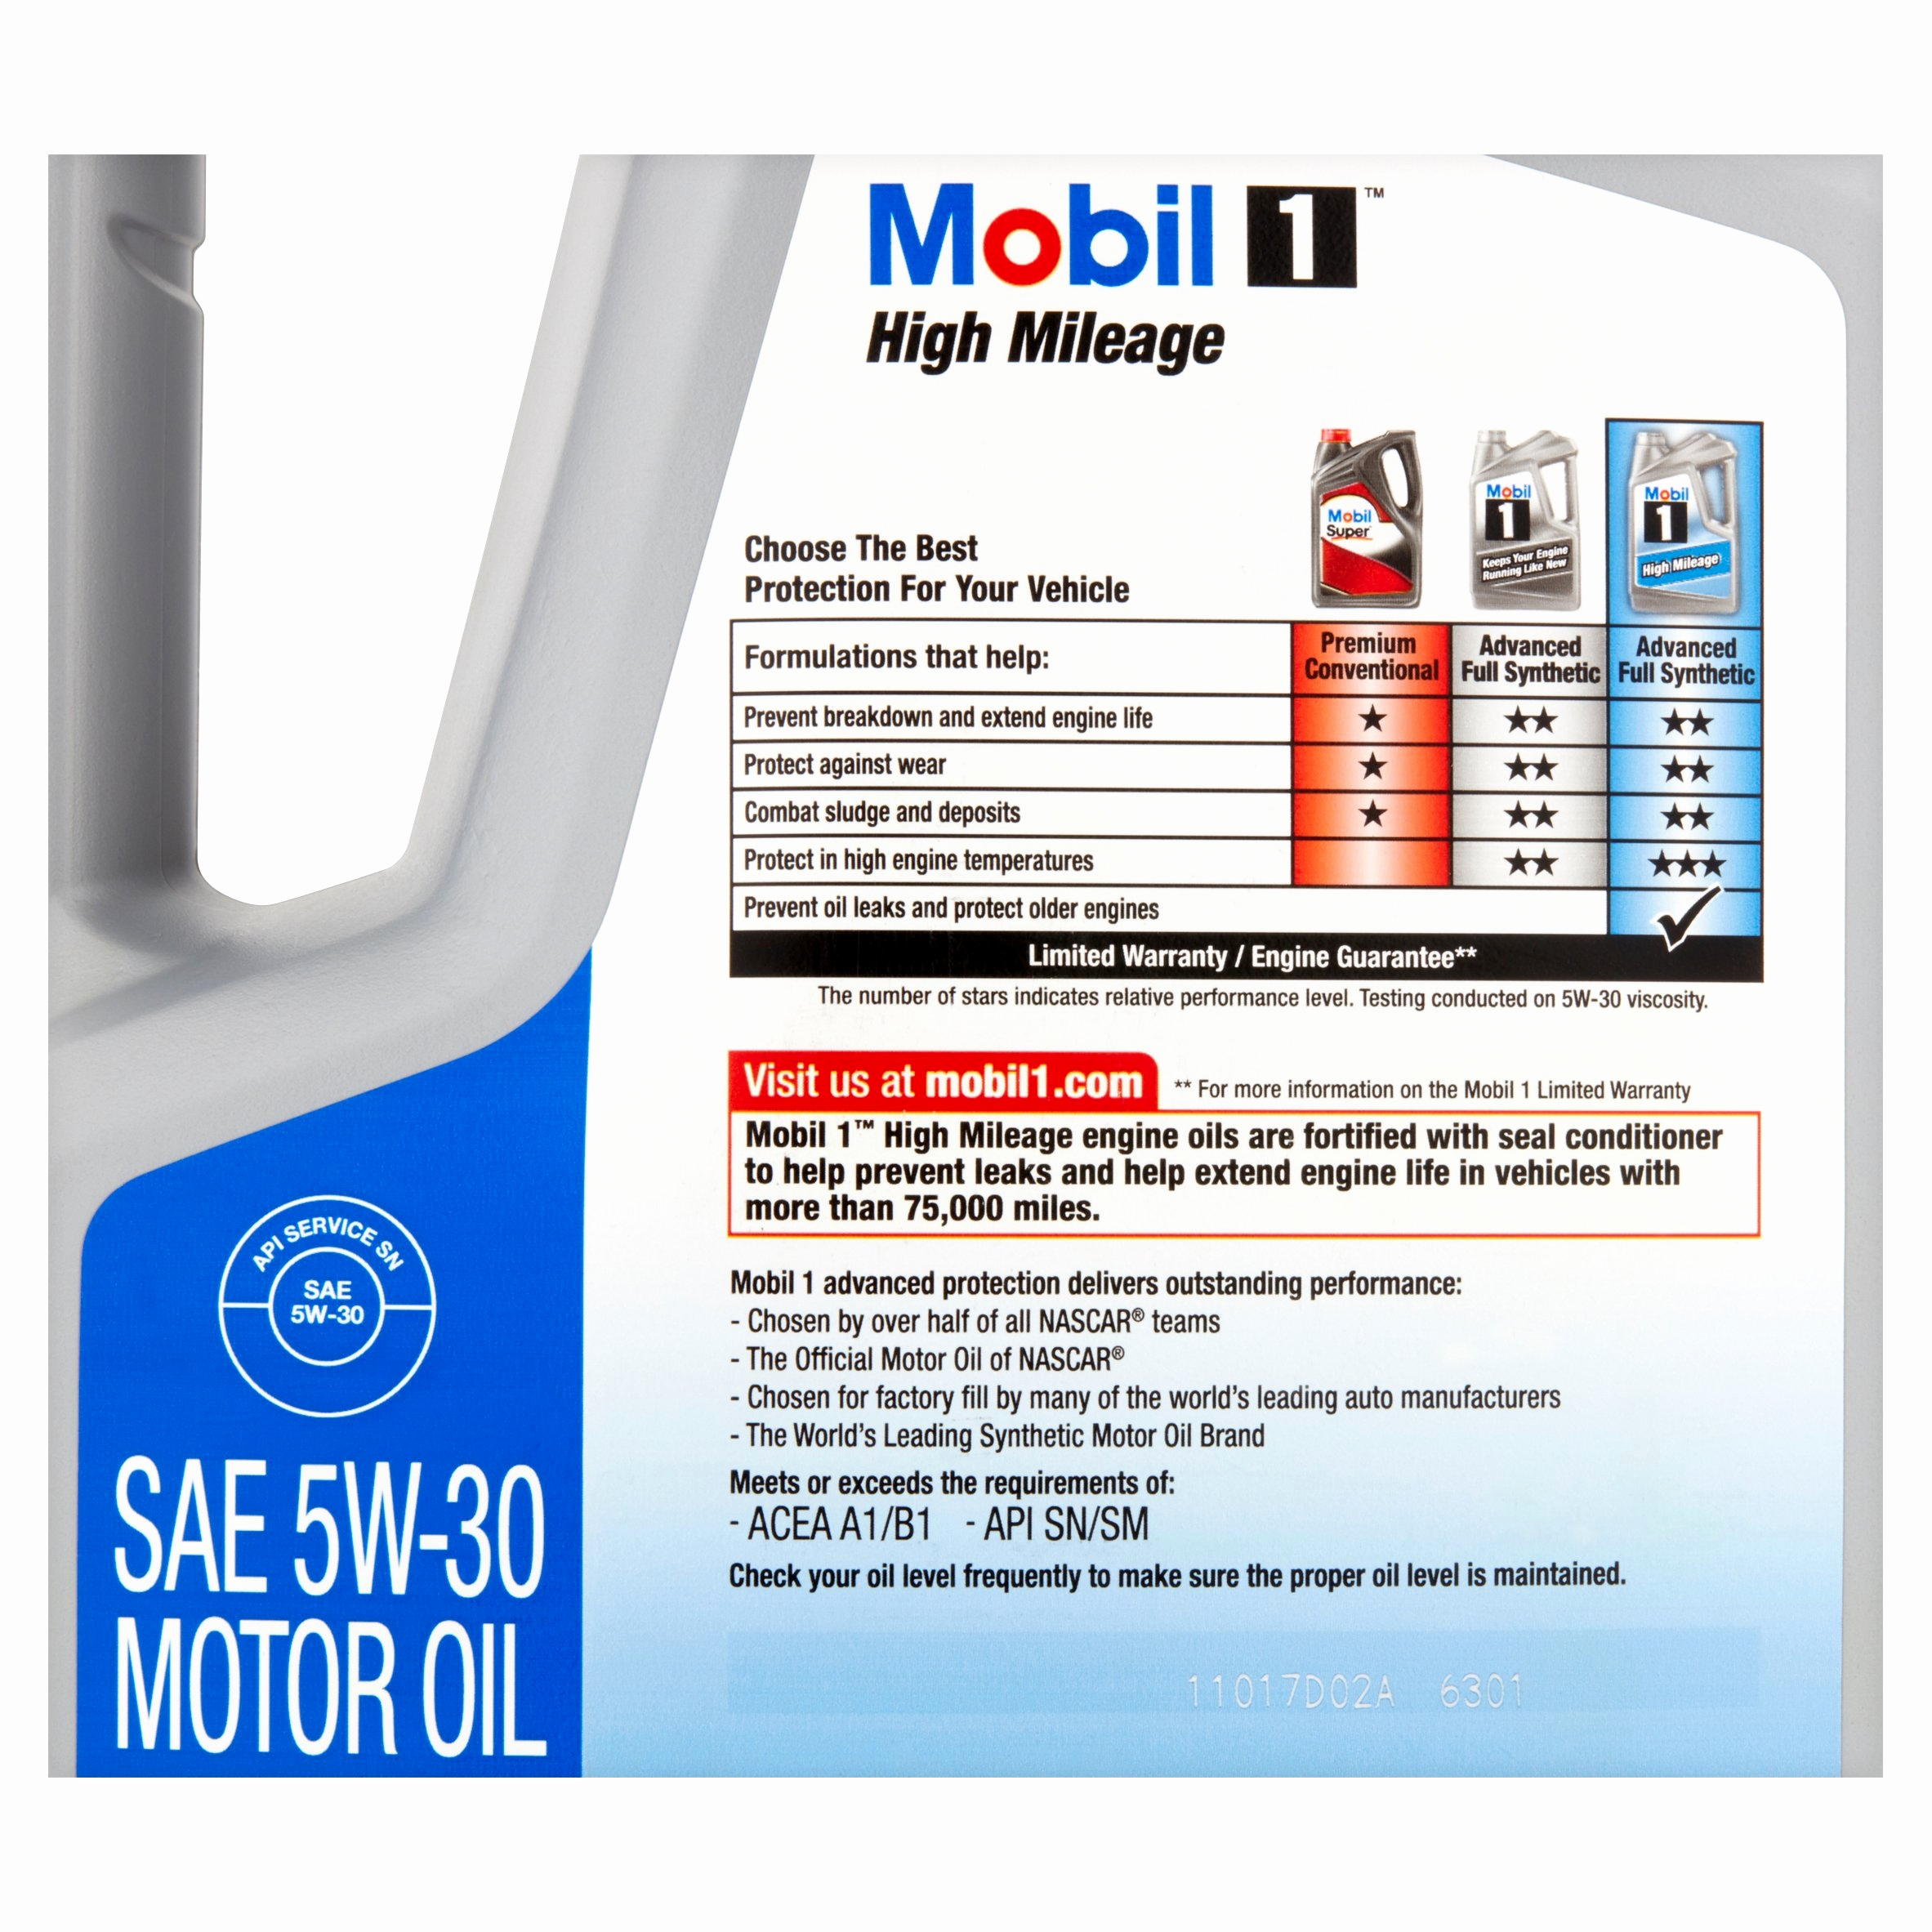 Acord 35 Lovely Acord 35 Awesome Mobil 1 5w 30 High Mileage Full Synthetic Motor Oil